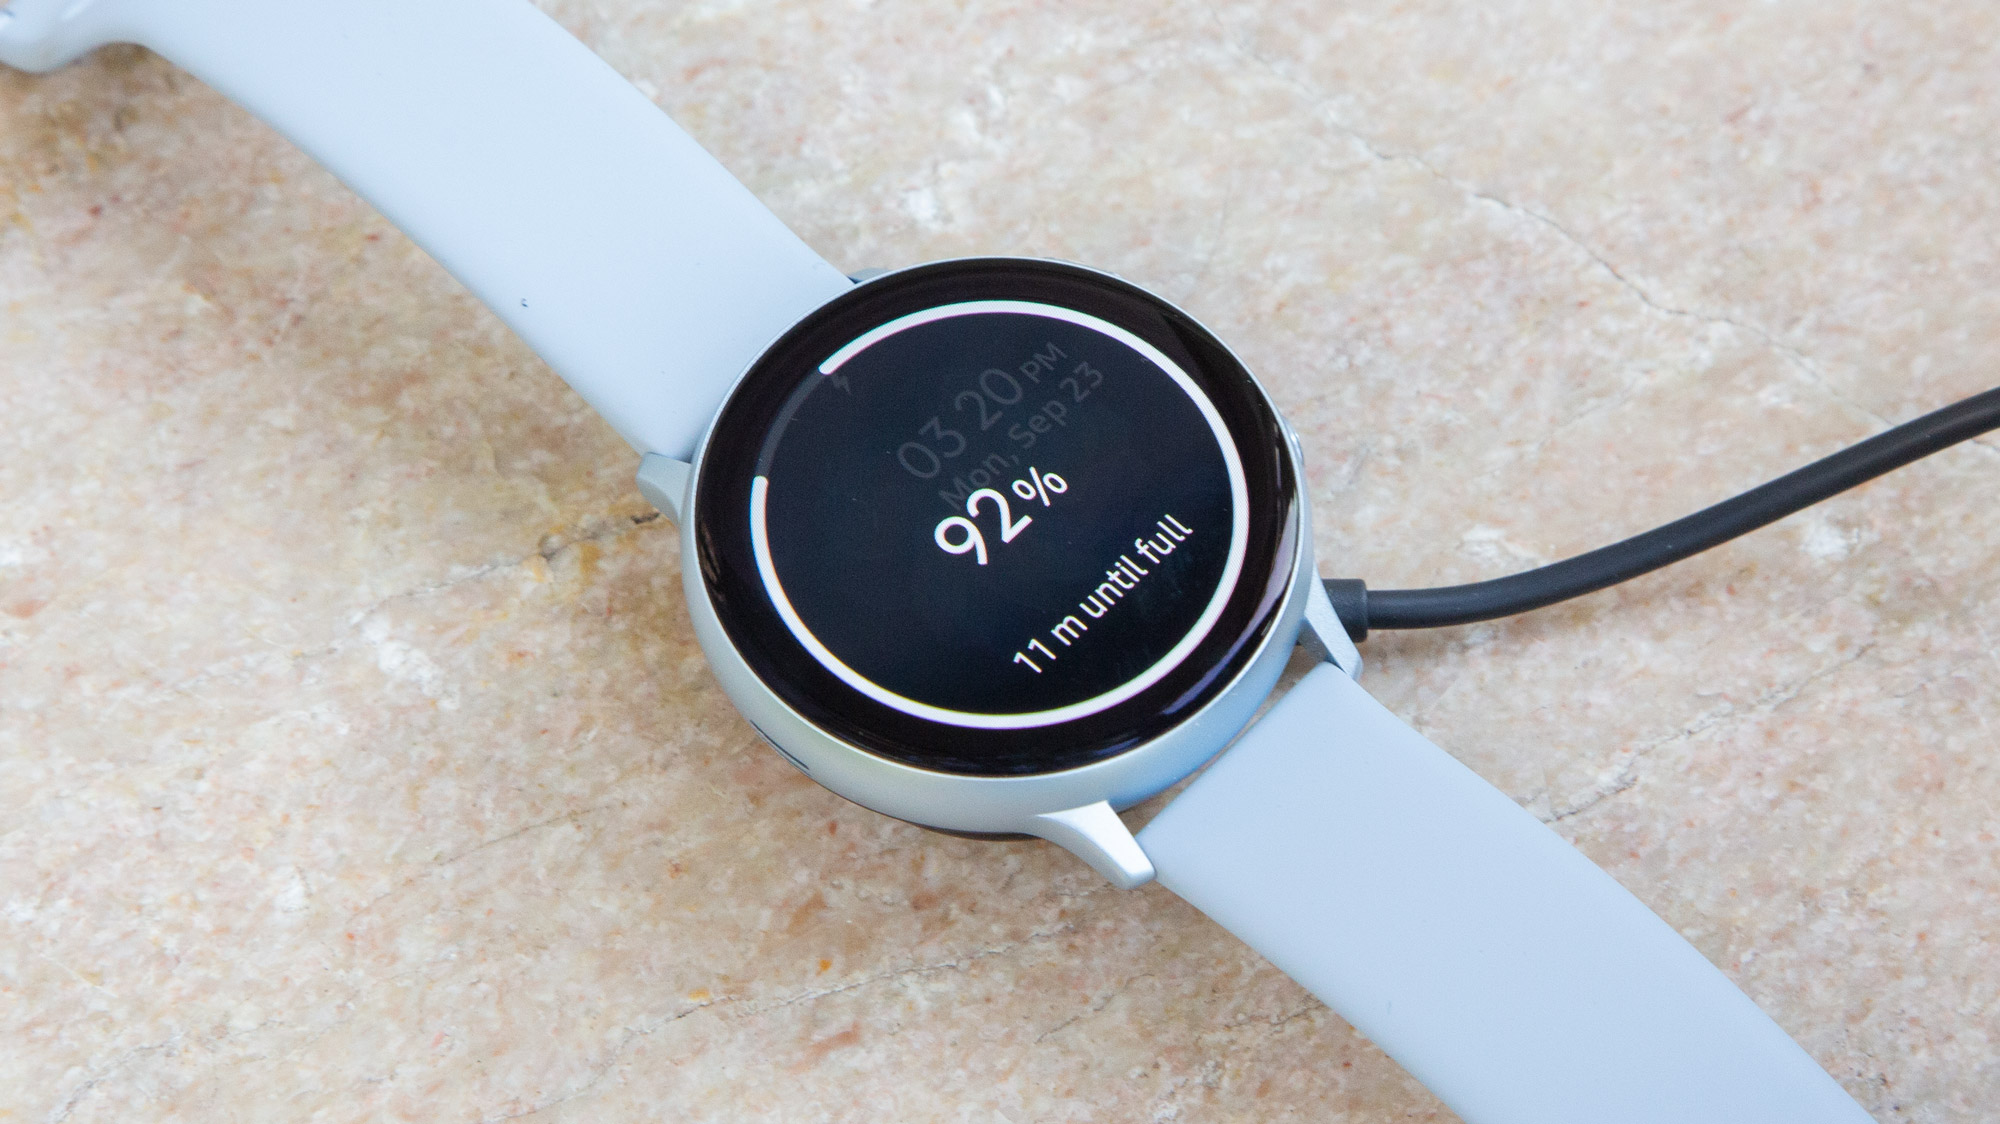 New Samsung smartwatch is in the works, but we don't know if it's the Galaxy Watch 2